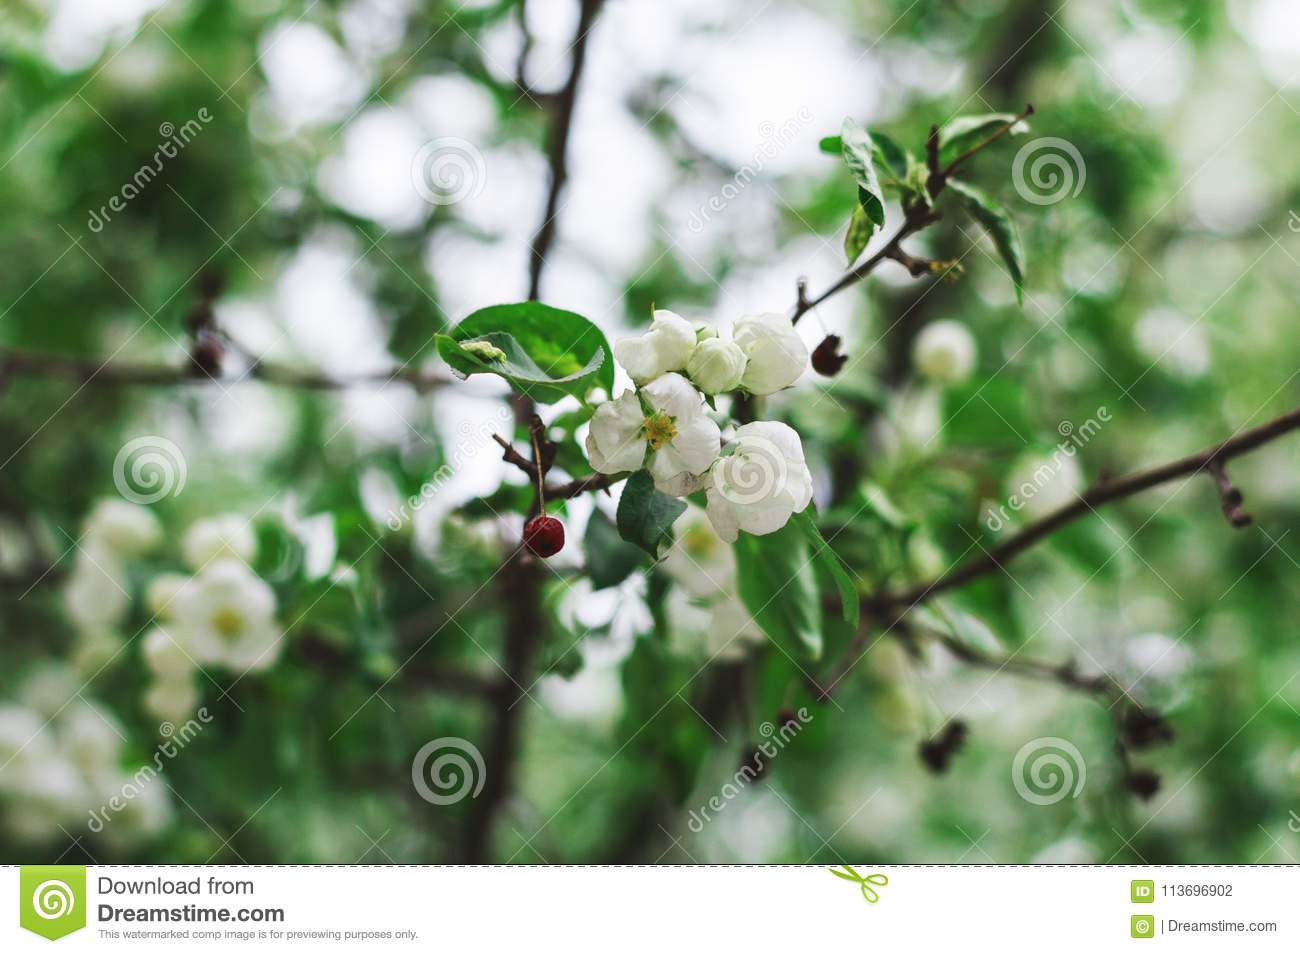 Blooming apple tree in spring blossoming white flowers of apple blooming apple tree in spring blossoming white flowers of apple focus in the center of the composition on flowers and red berries mightylinksfo